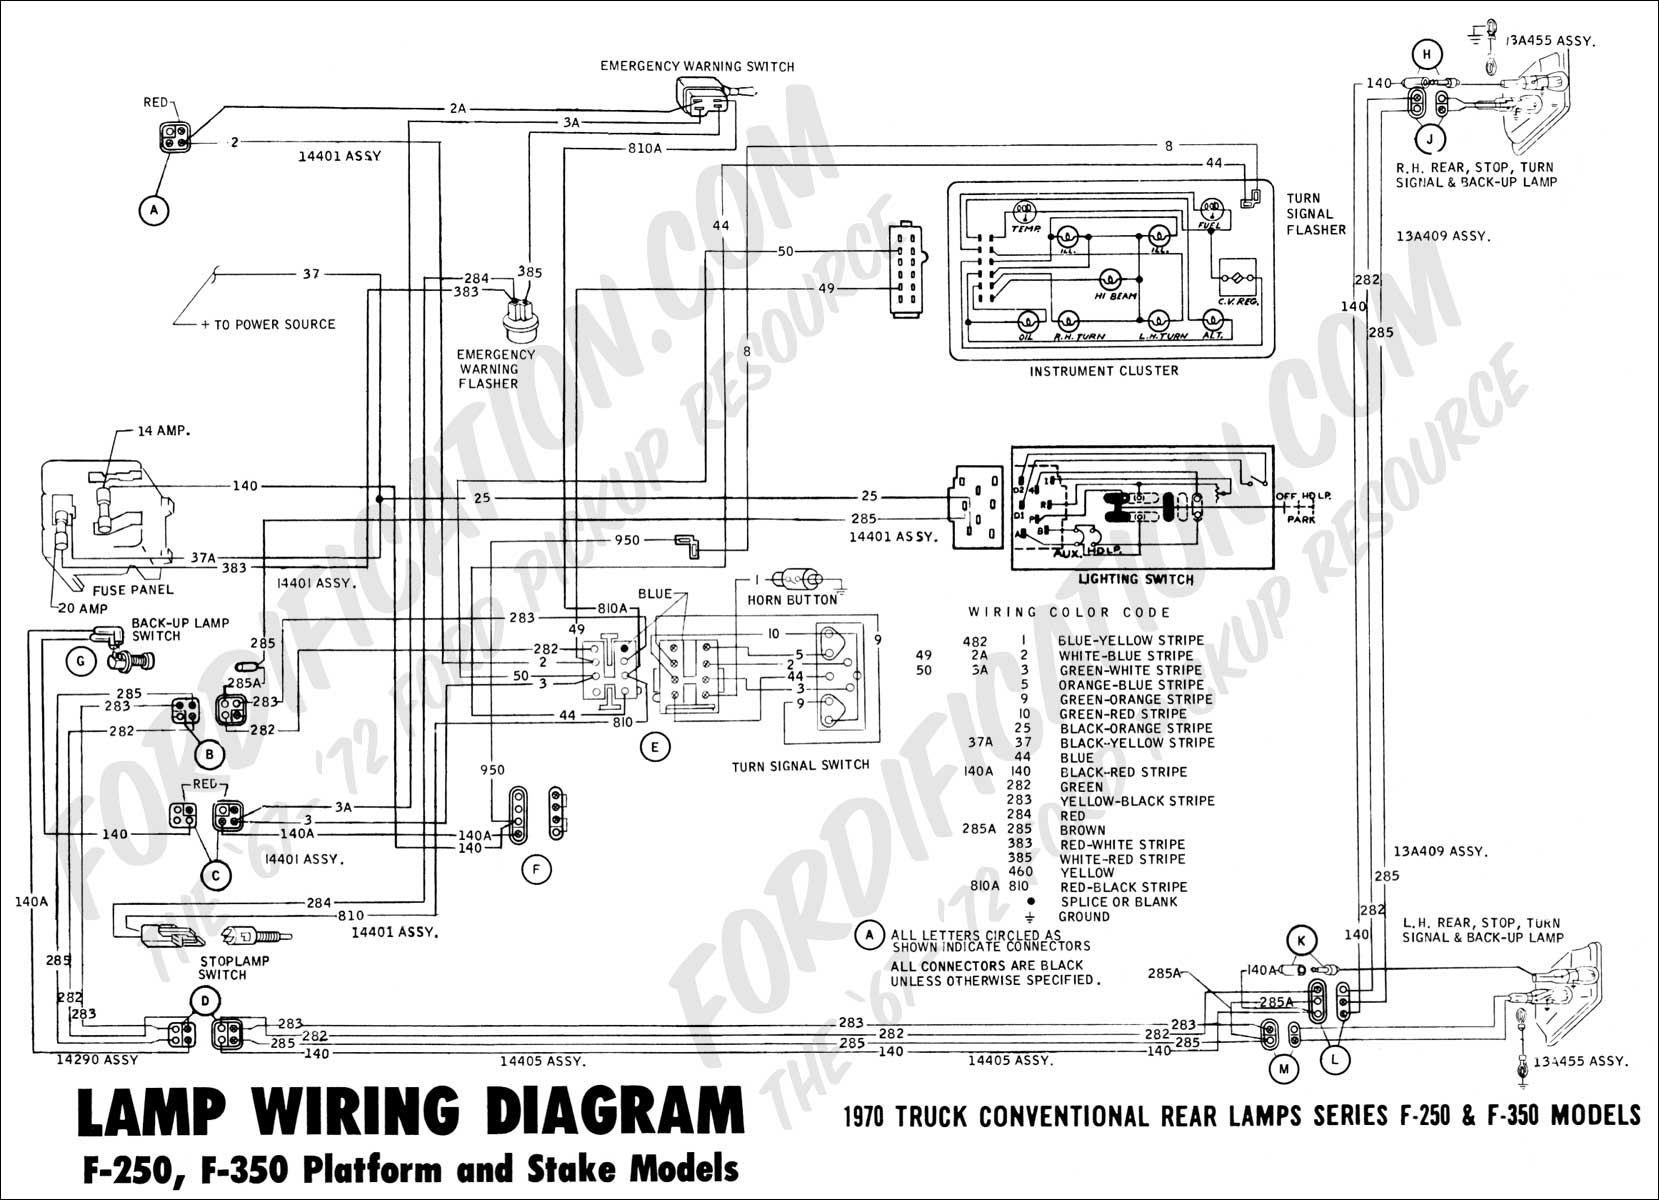 wiring diagram for 1972 ford mustang 4 jum capecoralwiring diagram further 1972 gmc sierra ford mustang wiring free engine image for user manual 1972